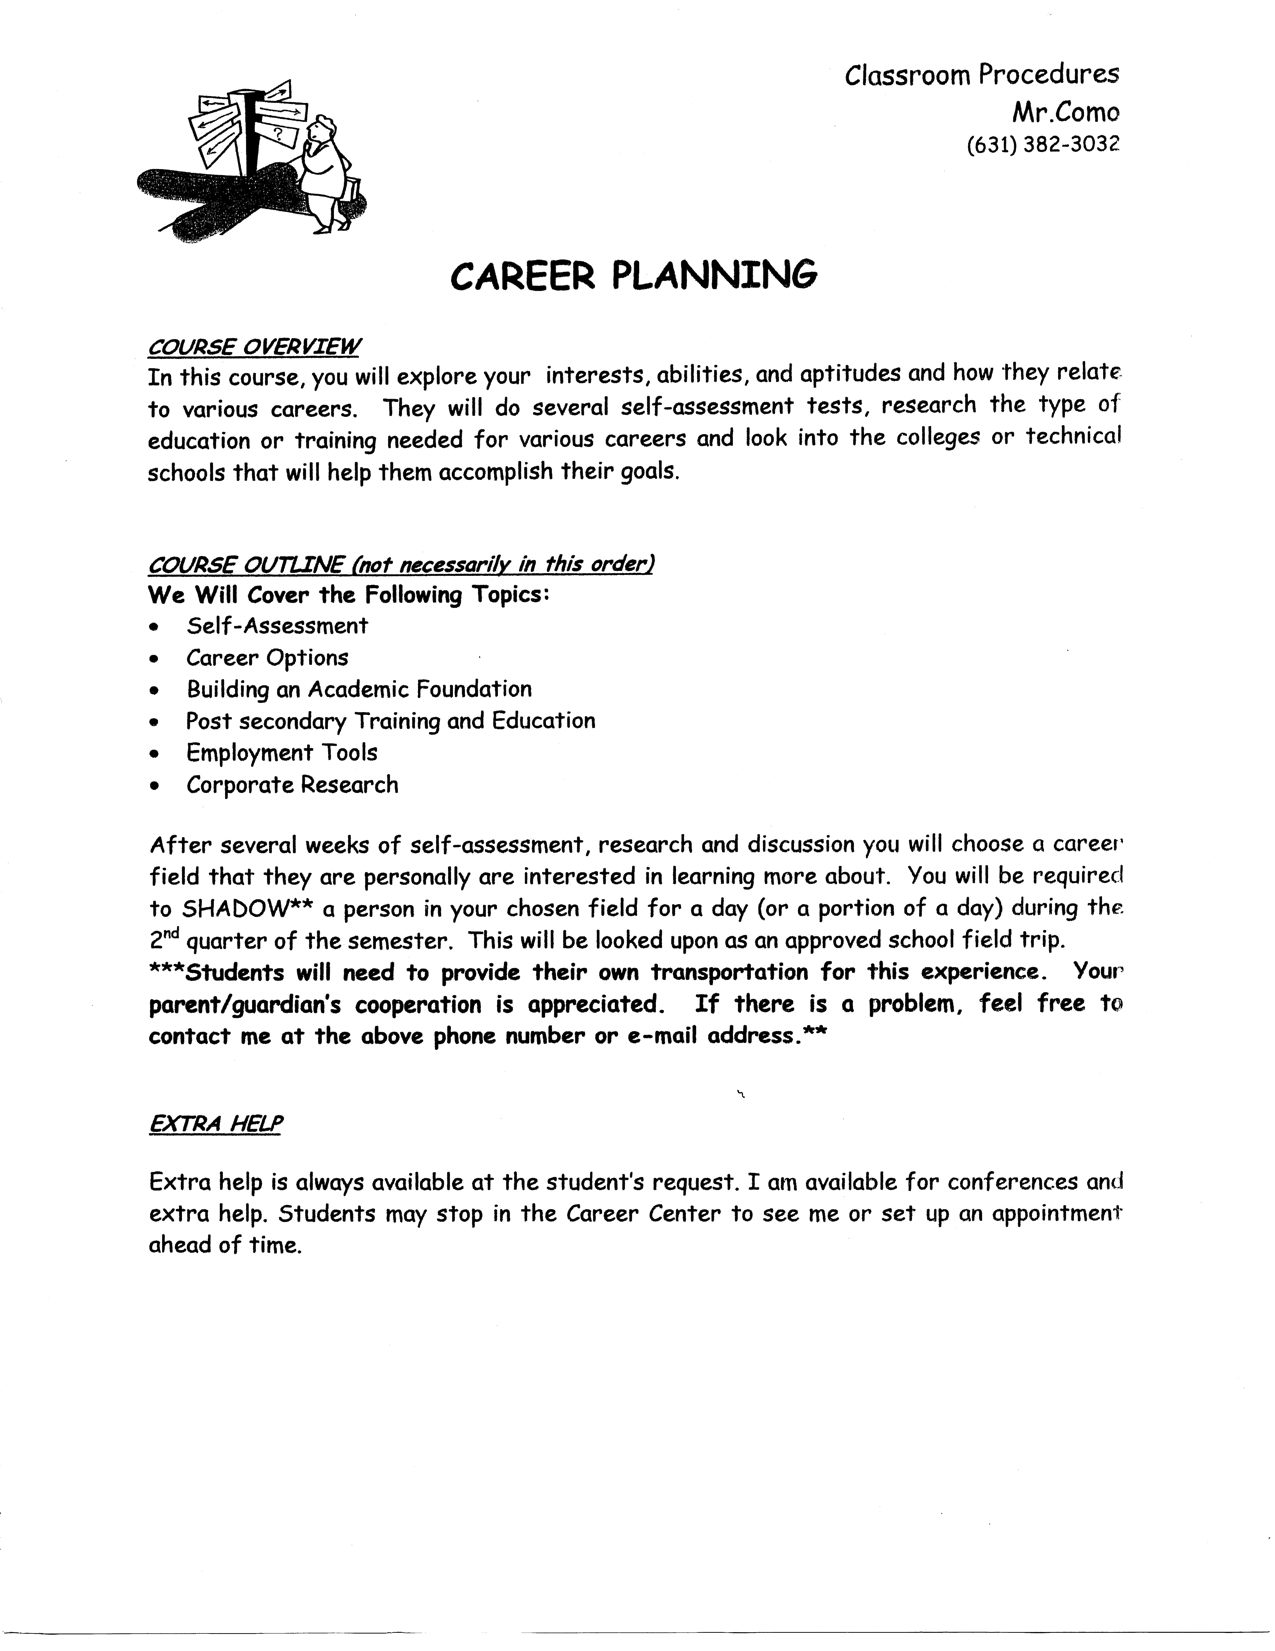 025 Essay Example Career Planning002 College Application Singular Outline Pdf Layout Full